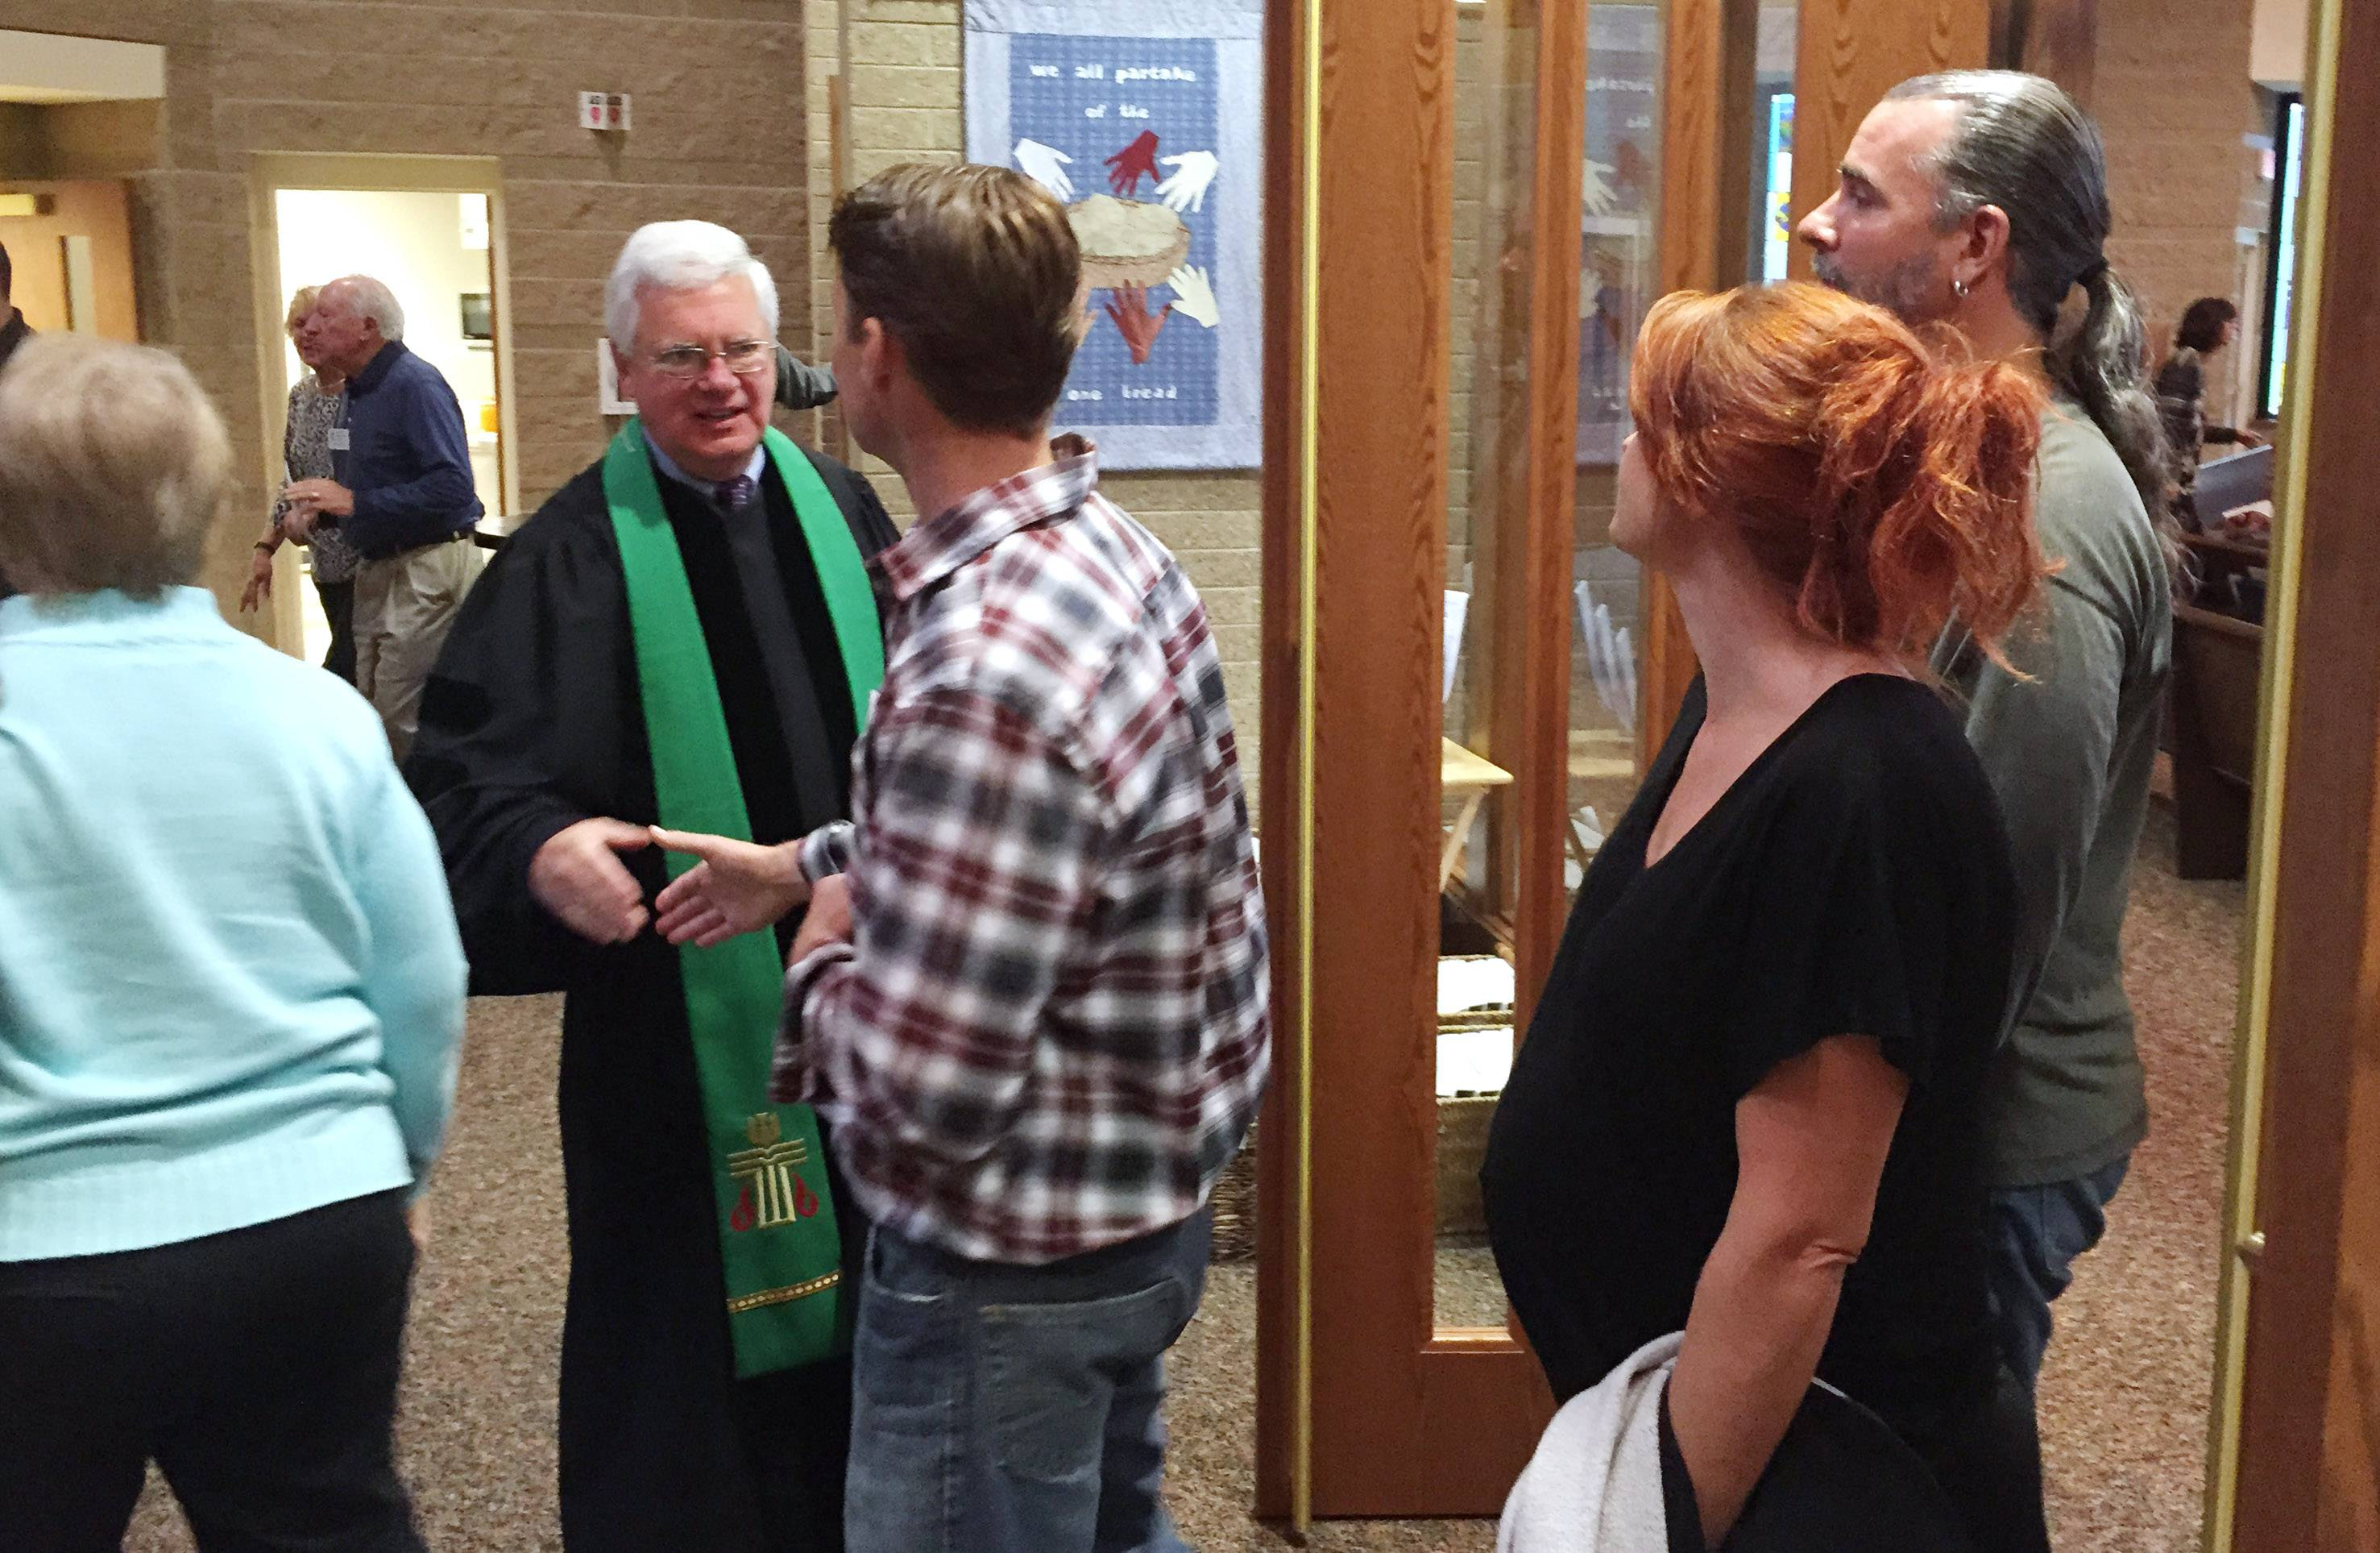 Wildwood Presbytarian Church near Grayslake did its best to return to normal Sunday, the day after a car plowed into the building. Here interim Pastor Bill Ingersol greets parishioners for their regular service.